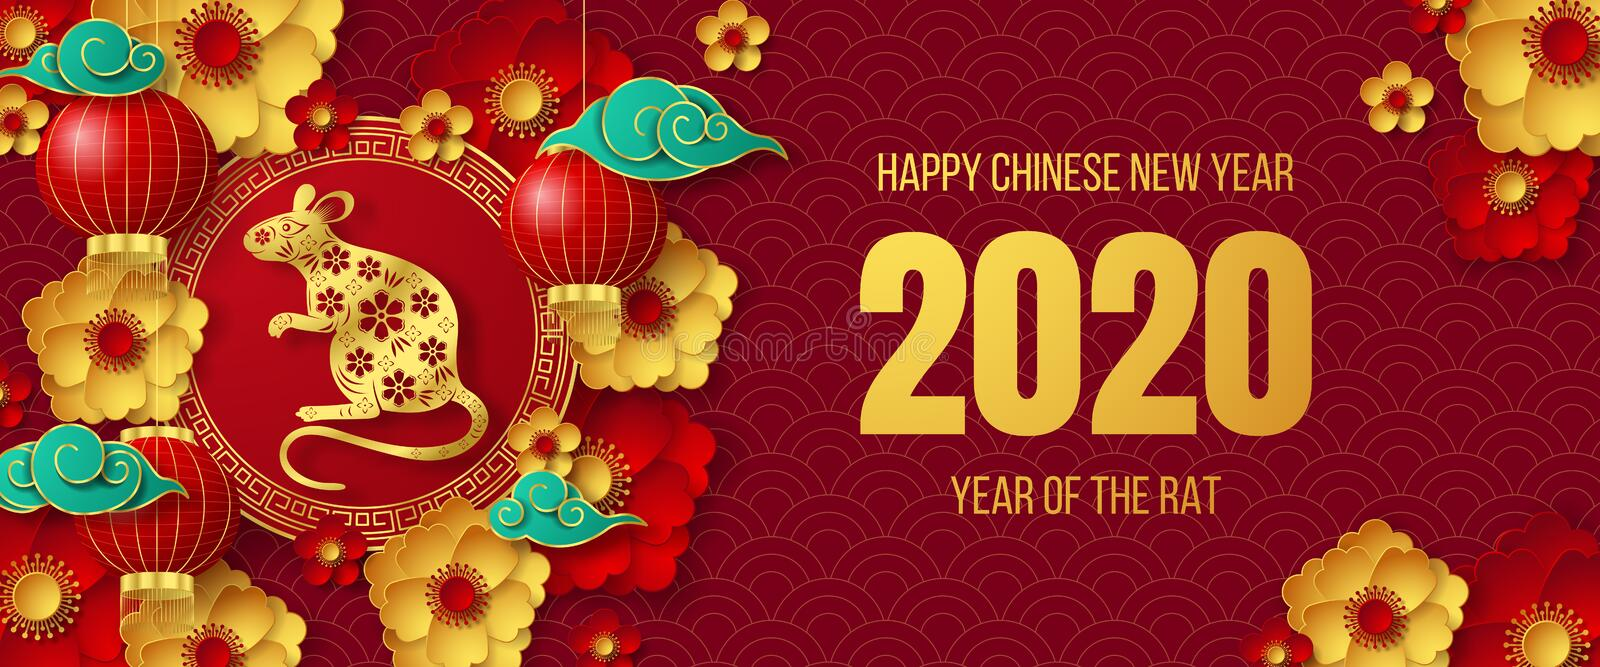 Happy Chinese New Year 2020 banner. stock illustration